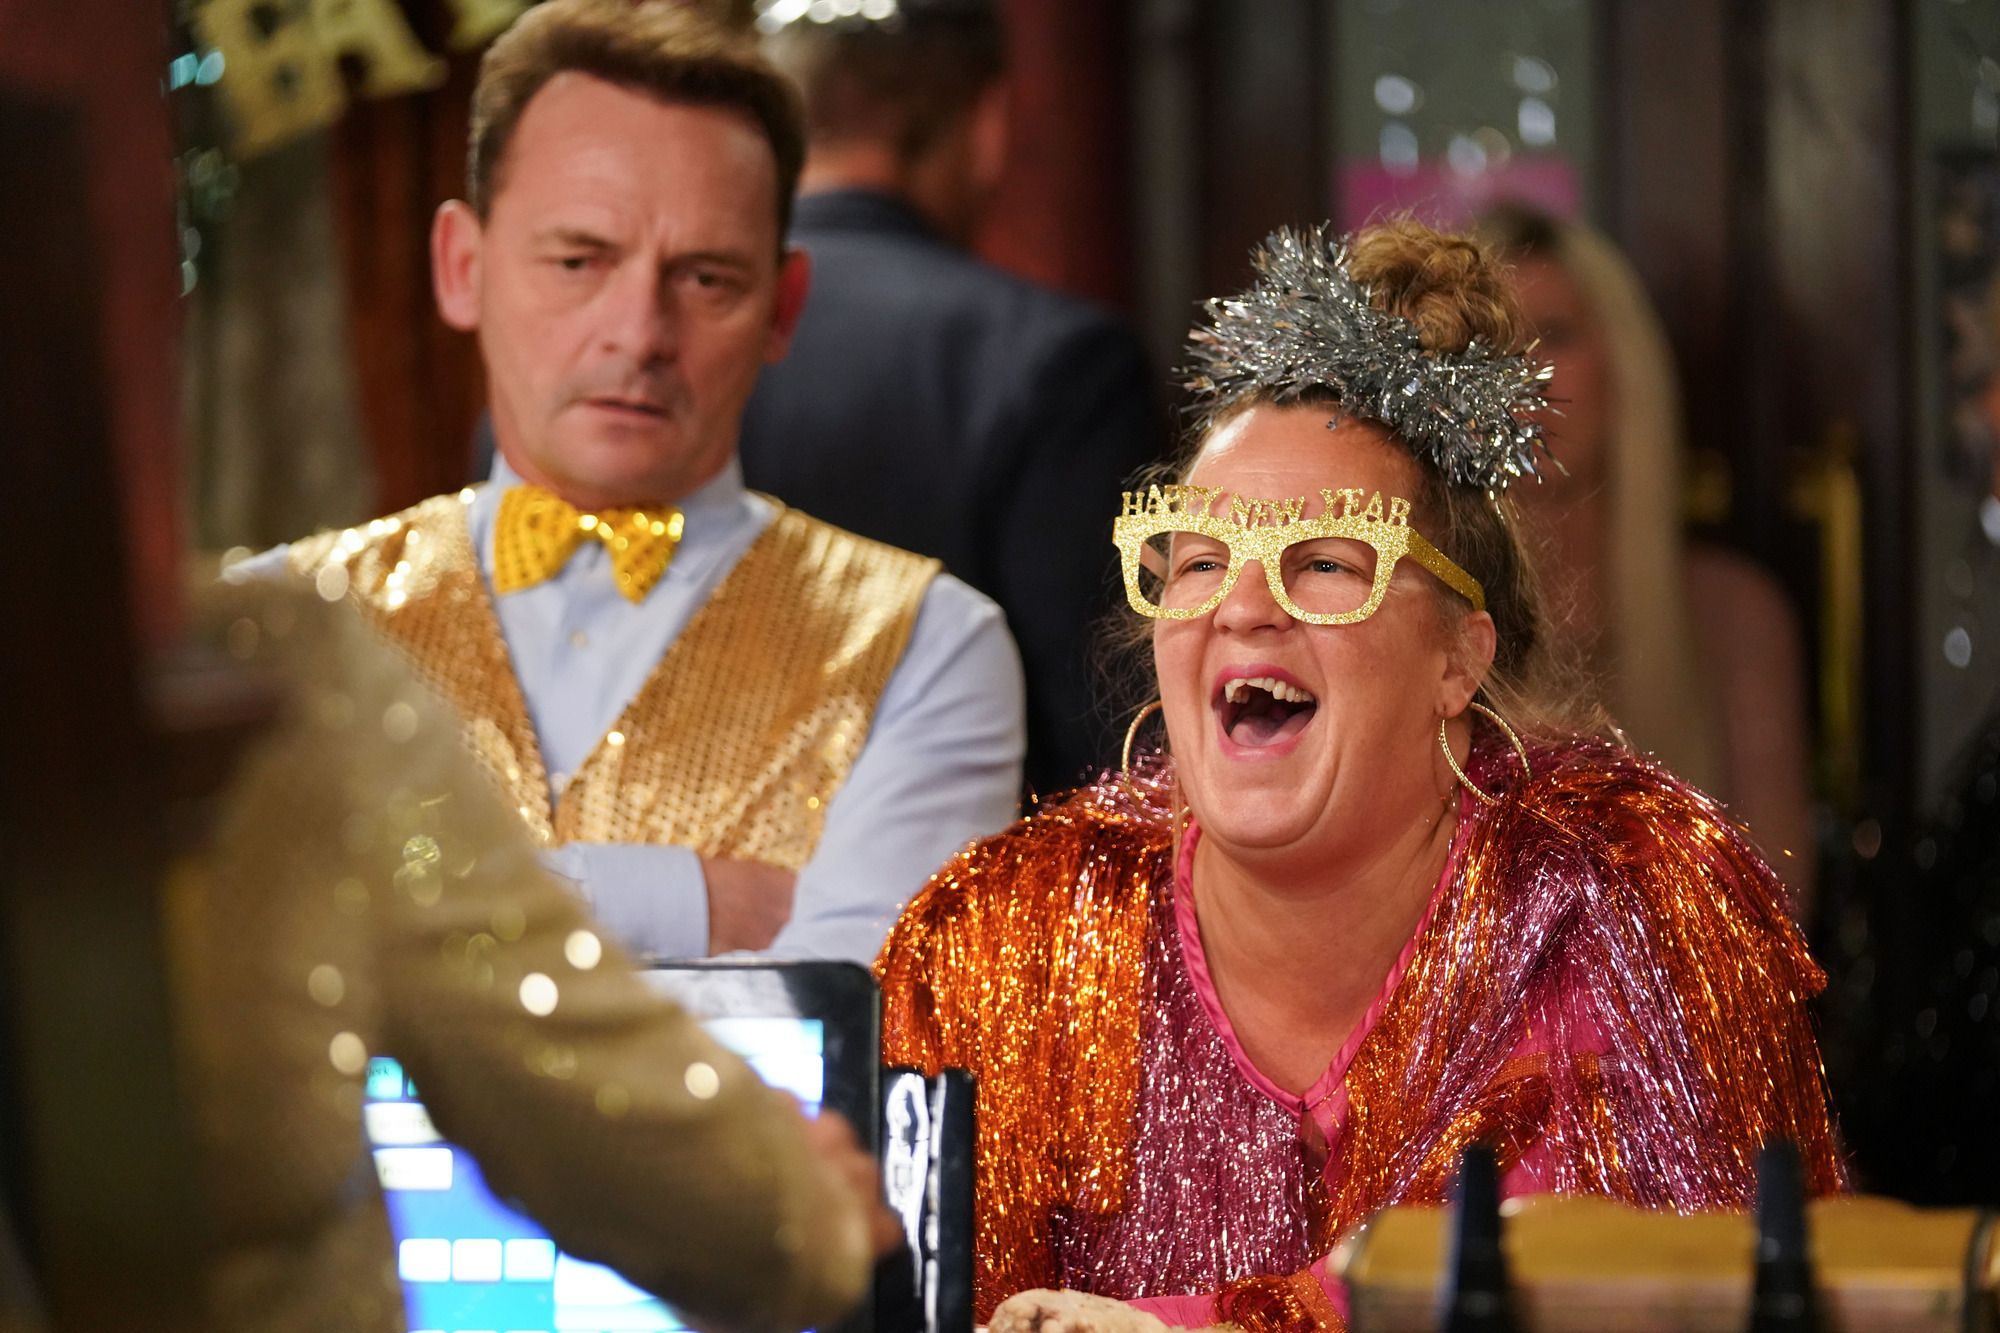 Karen Taylor enjoys New Year's Eve at the Queen Vic in EastEnders